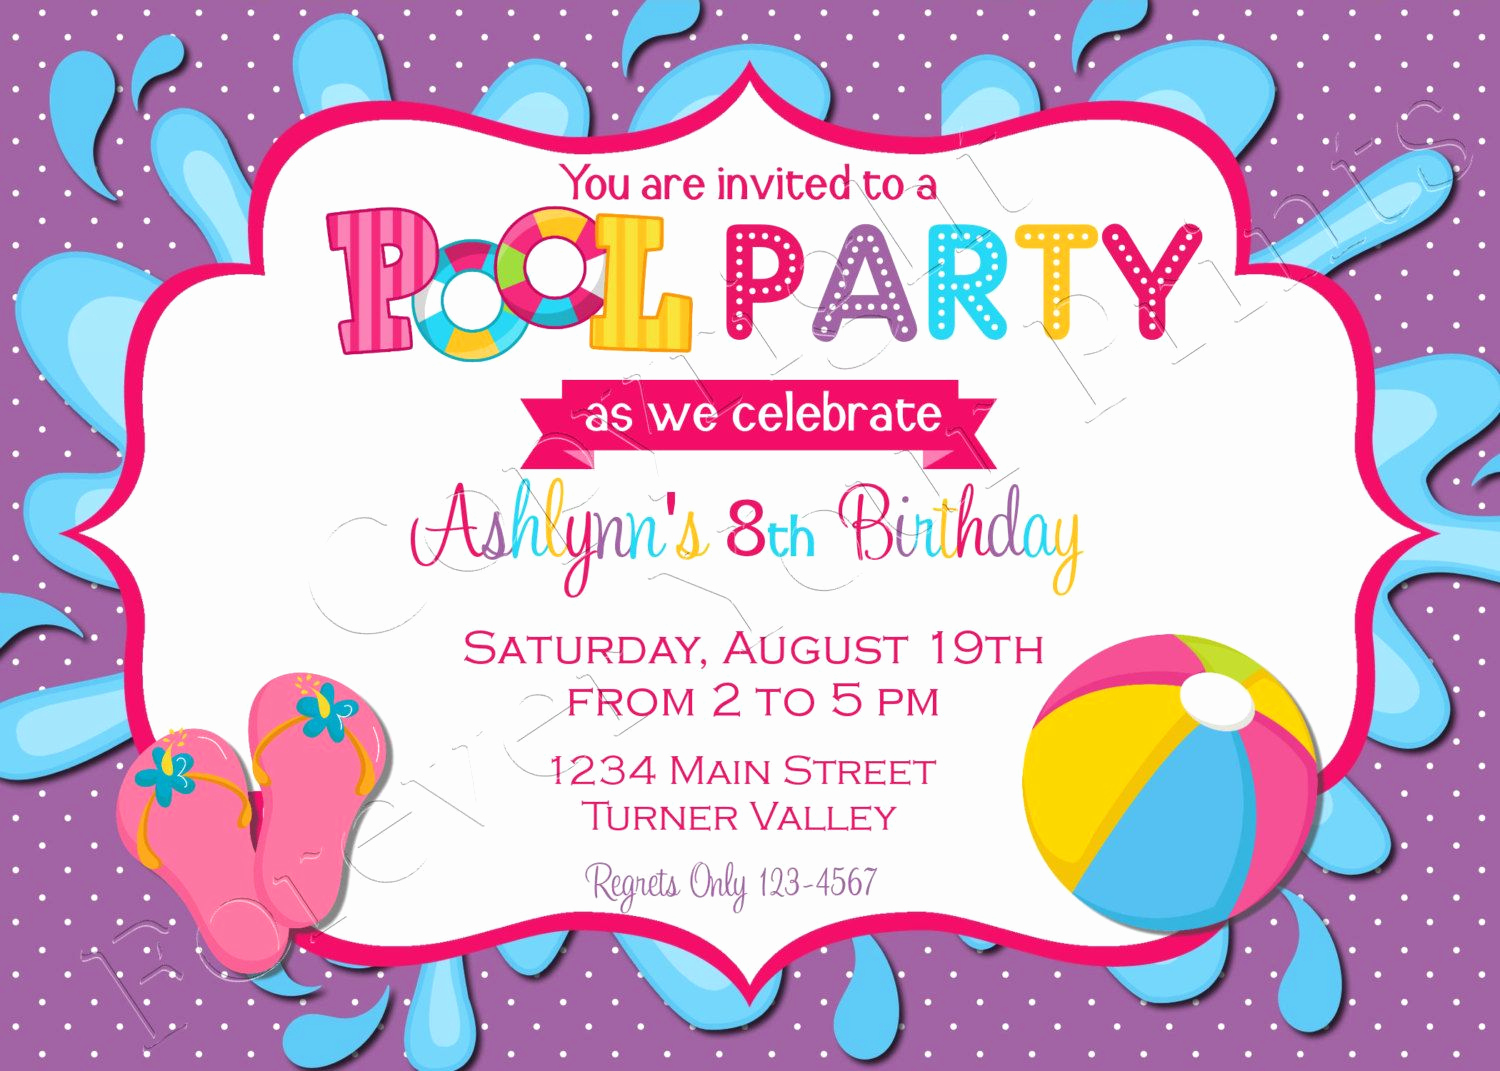 Birthday Pool Party Invitation Wording Awesome Pool Party Birthday Invitation Free Thank You Card